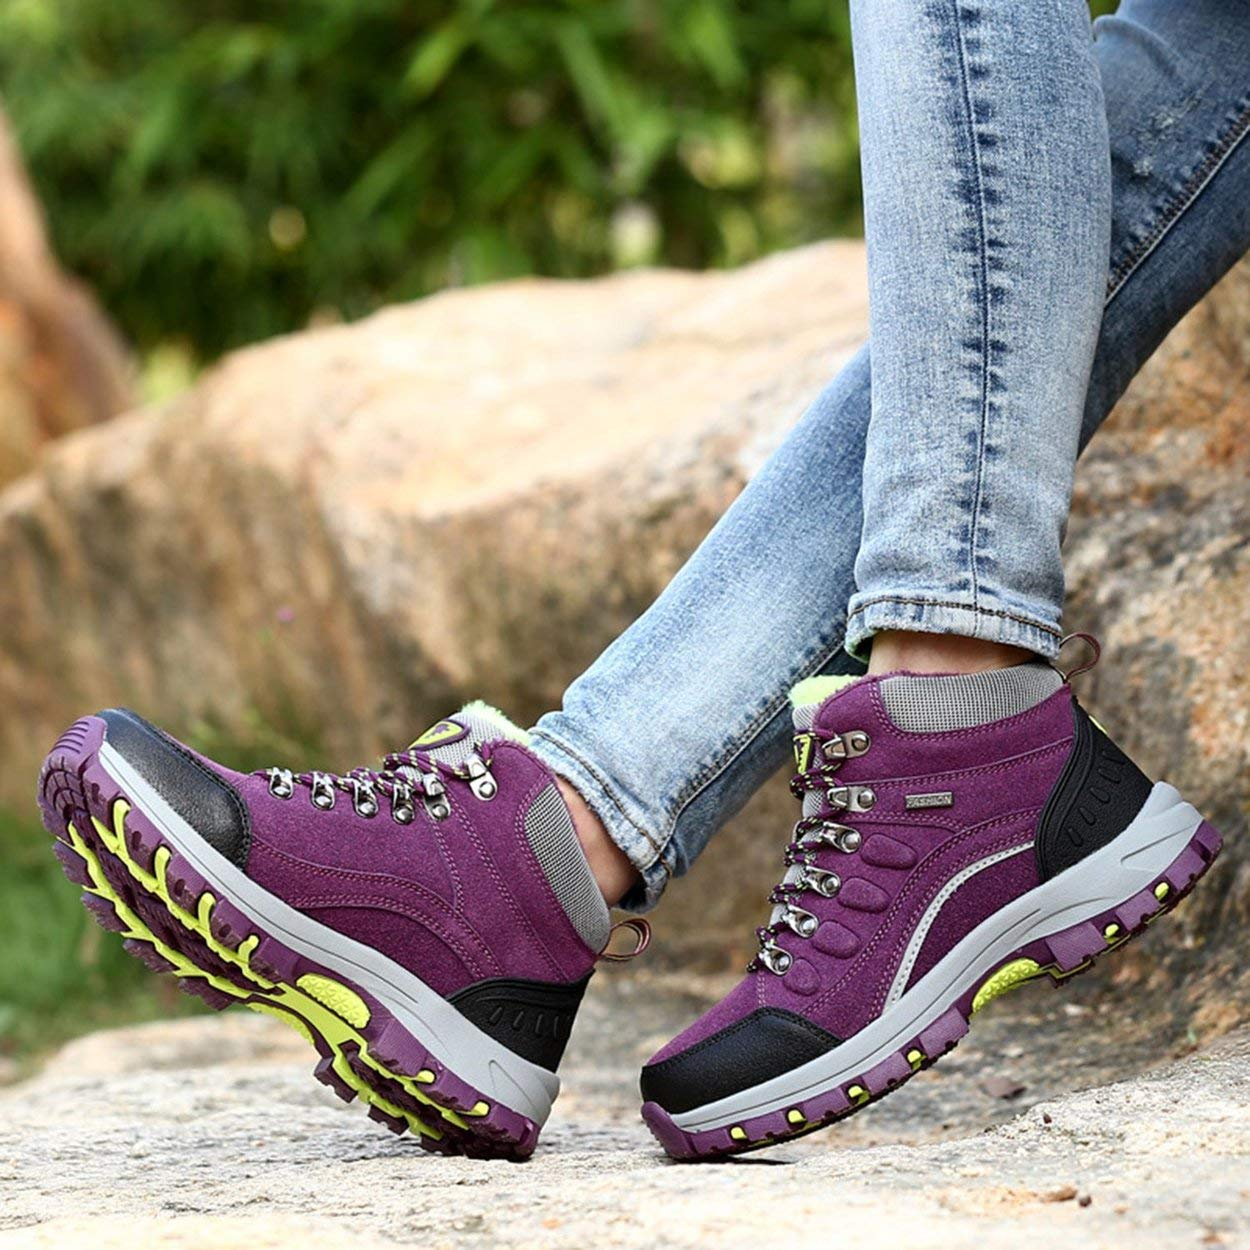 Winter Outdoor Plus-Down Warm Klettern Schuhe Lace-Up Frauen Wanderschuhe Lässige Sport Anti-Rutsch Atmungsaktive Schuhe